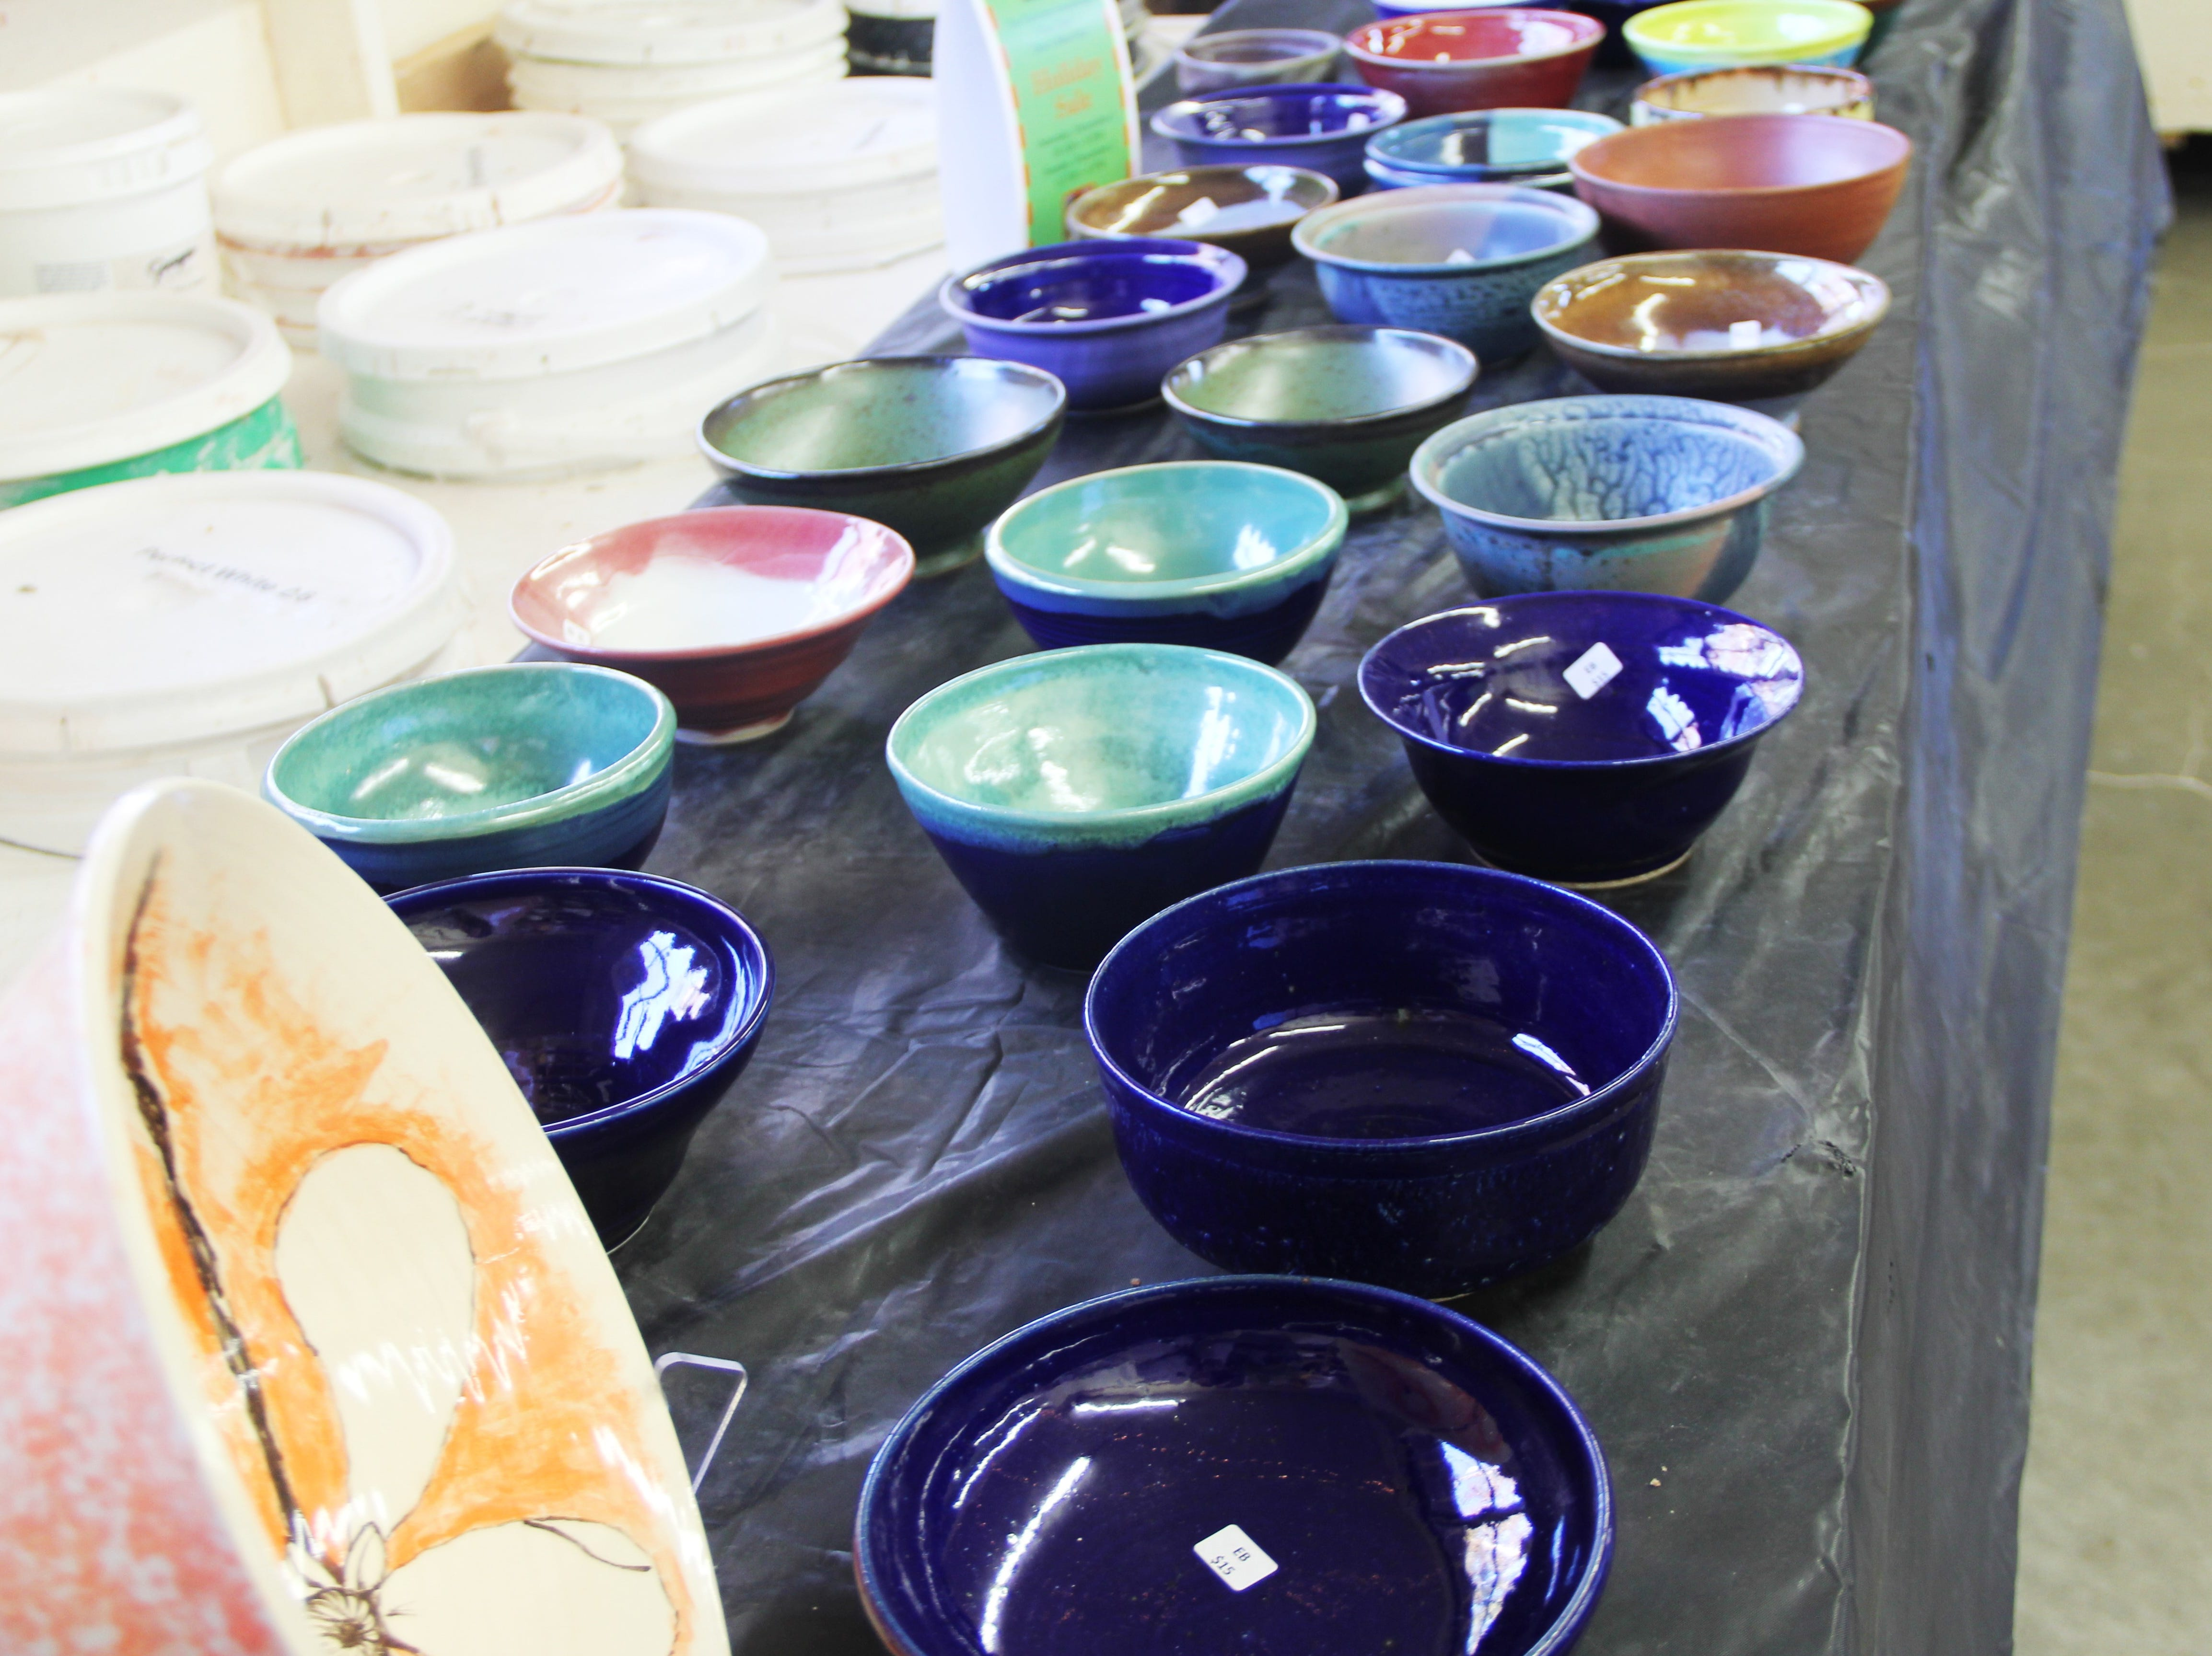 A portion of more than 1,150 bowls for sale at the Willamette Art Center's Empty Bowls fundraiser on Saturday, Nov. 17.